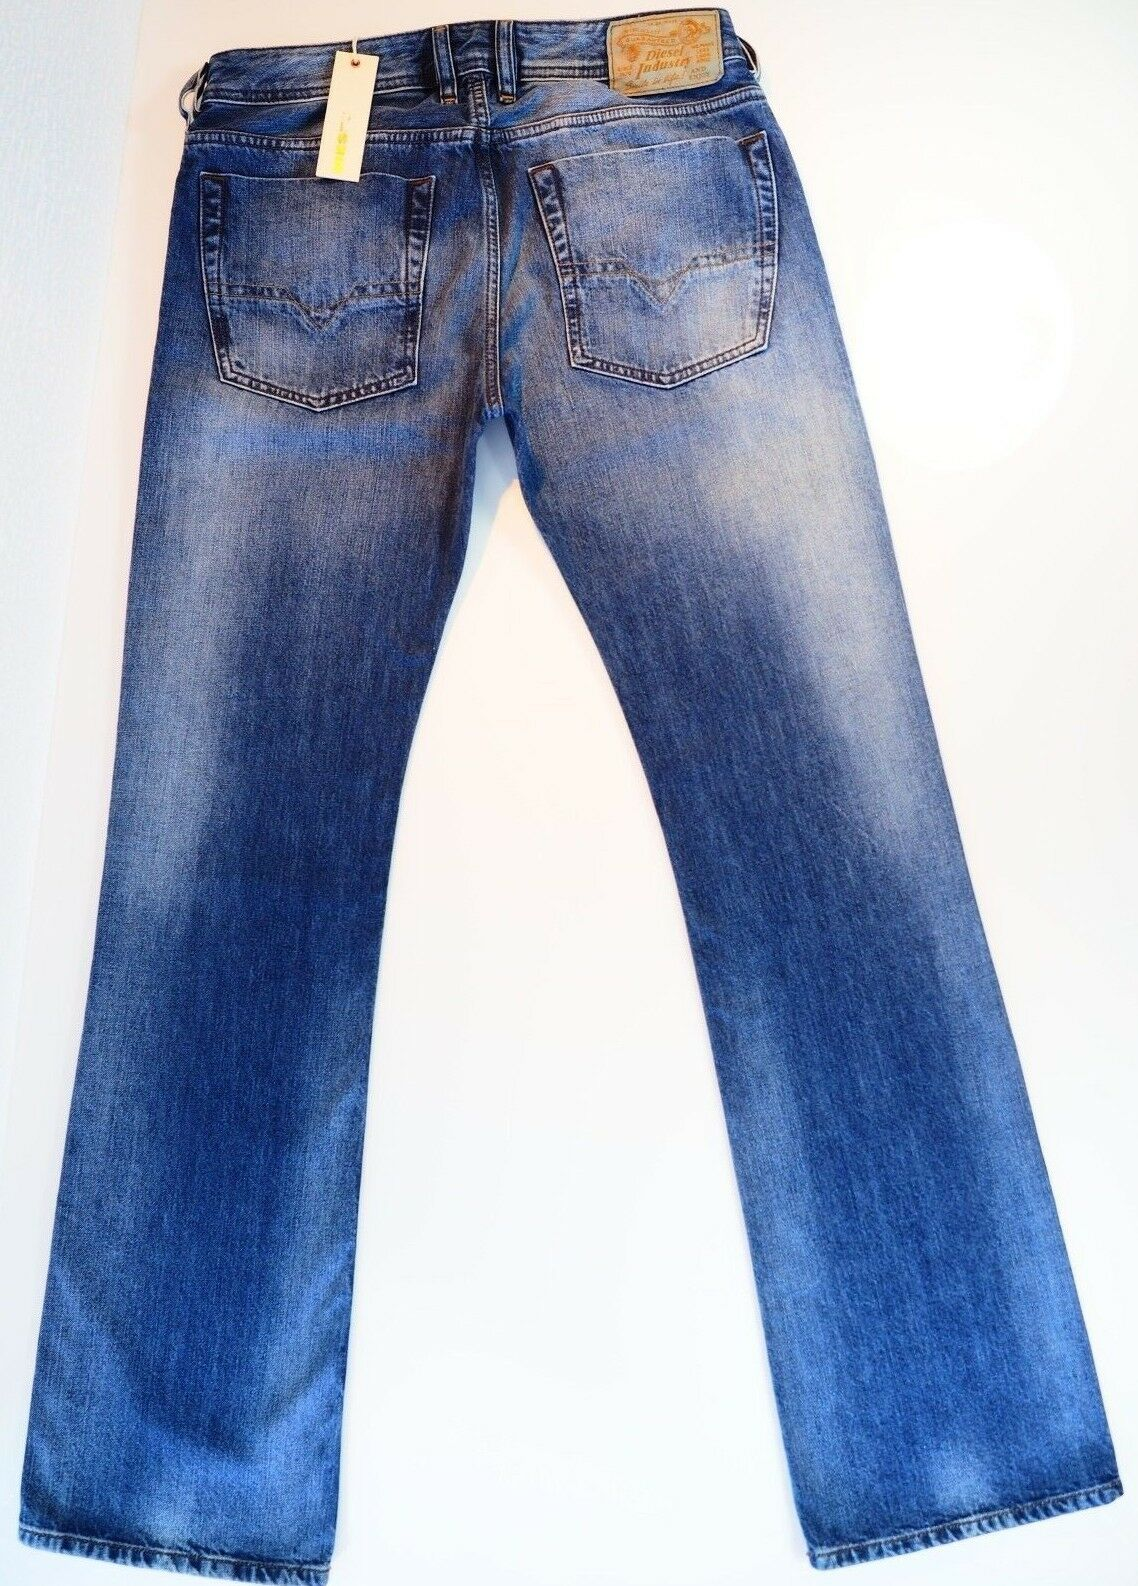 Diesel Zatiny Jeans W29 L33 Wash 0RB04 REGULAR BOOTCUT 29W 33L  NEW WITH TAGS